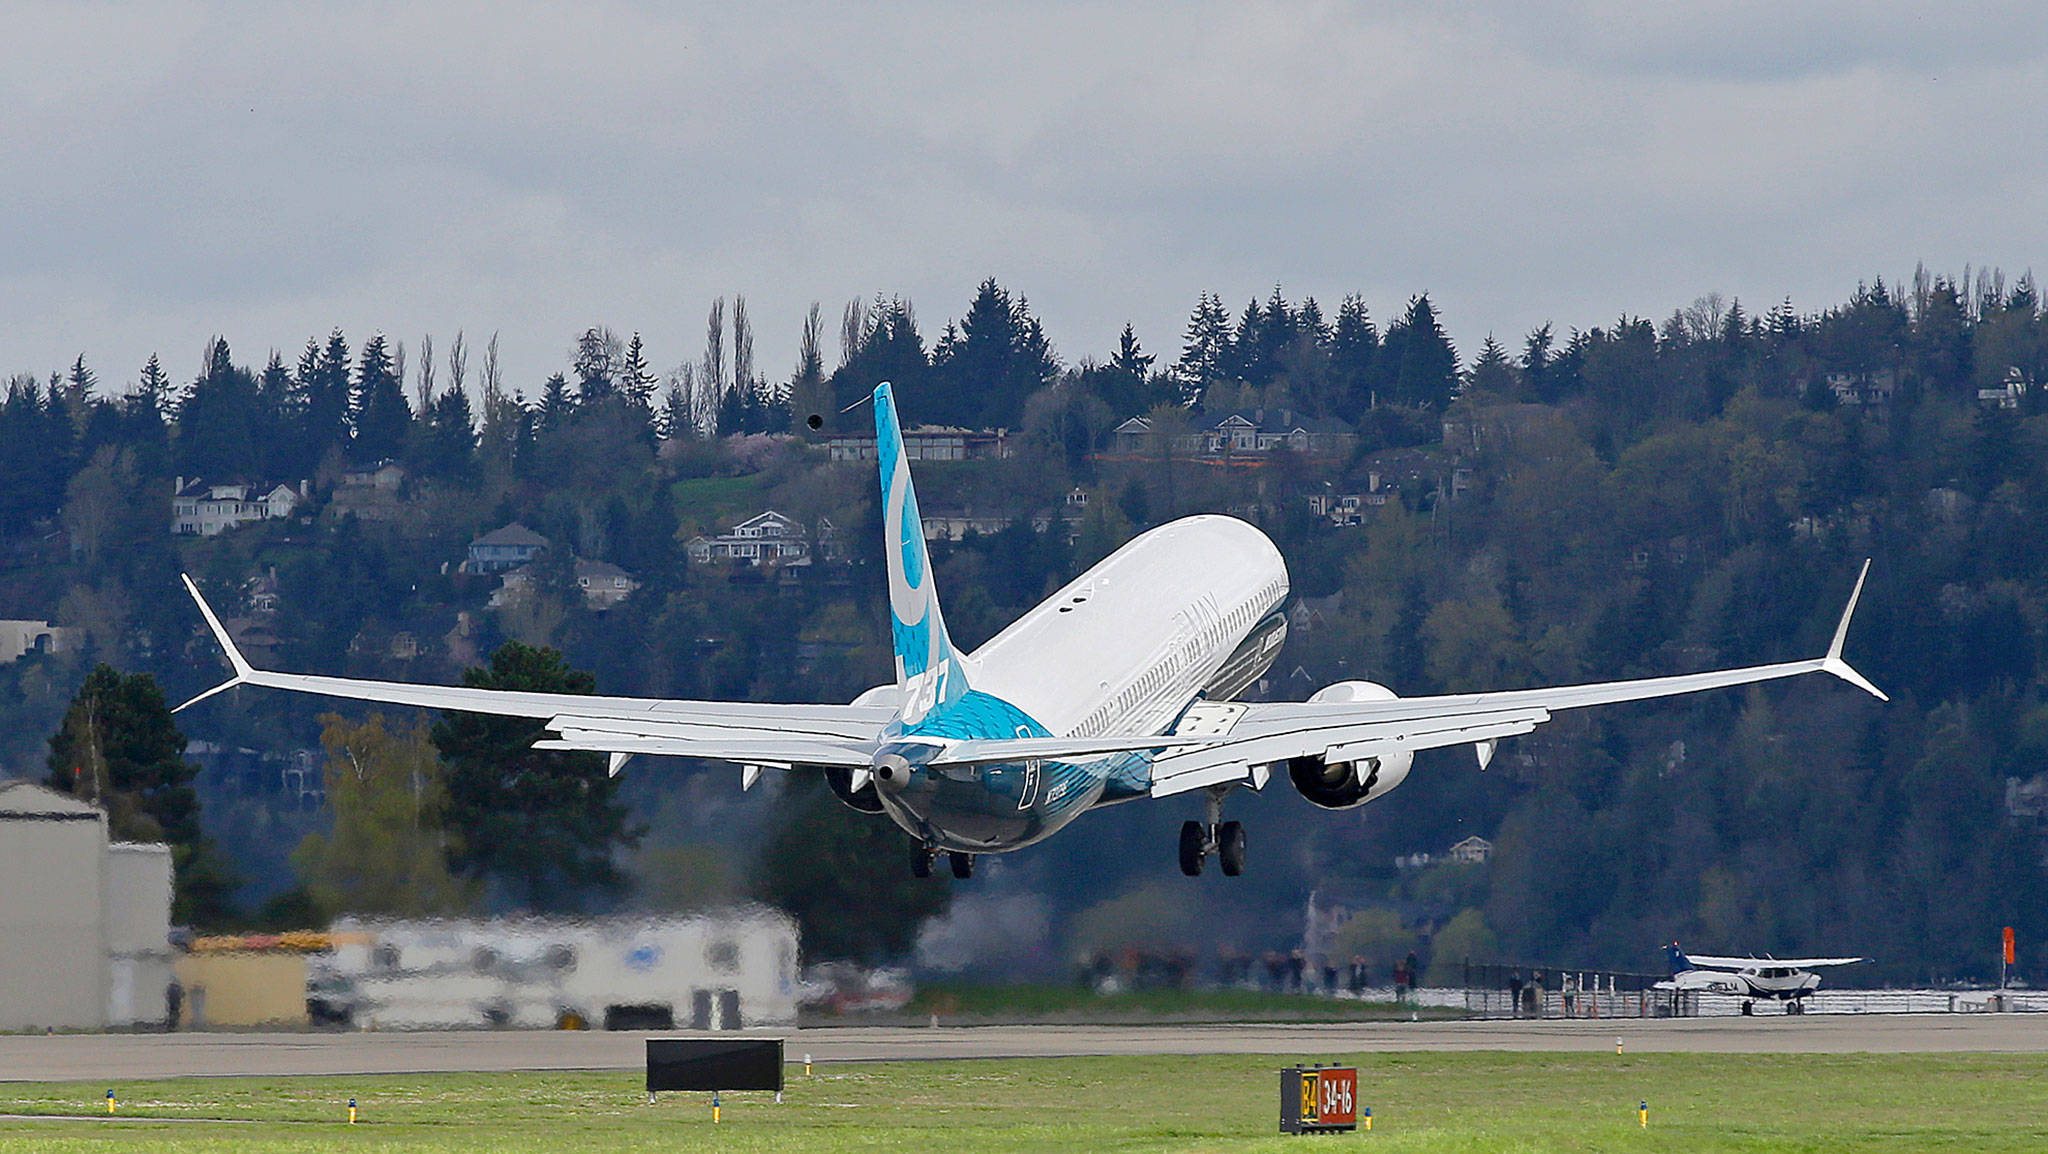 A Boeing 737 MAX 9 airplane takes off on the model's first flight on April 13 in Renton. (AP Photo/Ted S. Warren)                                 A Boeing 737 MAX 9 airplane takes off on its first flight, April 13, 2017, in Renton.                                 (Ted S. Warren / Associated Press)